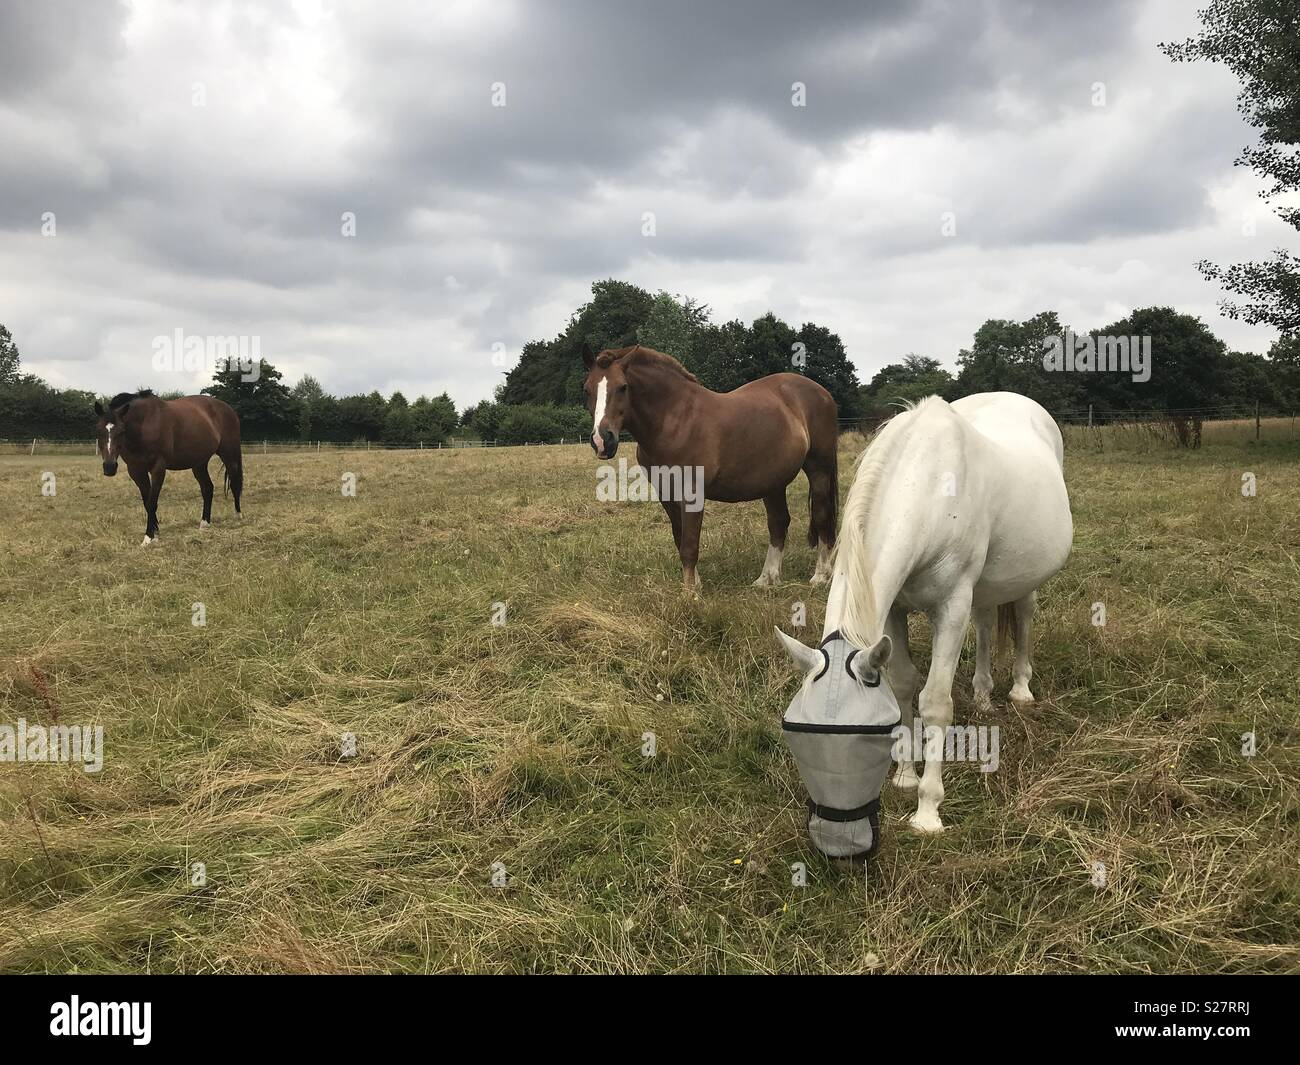 Three horses in a field - Stock Image